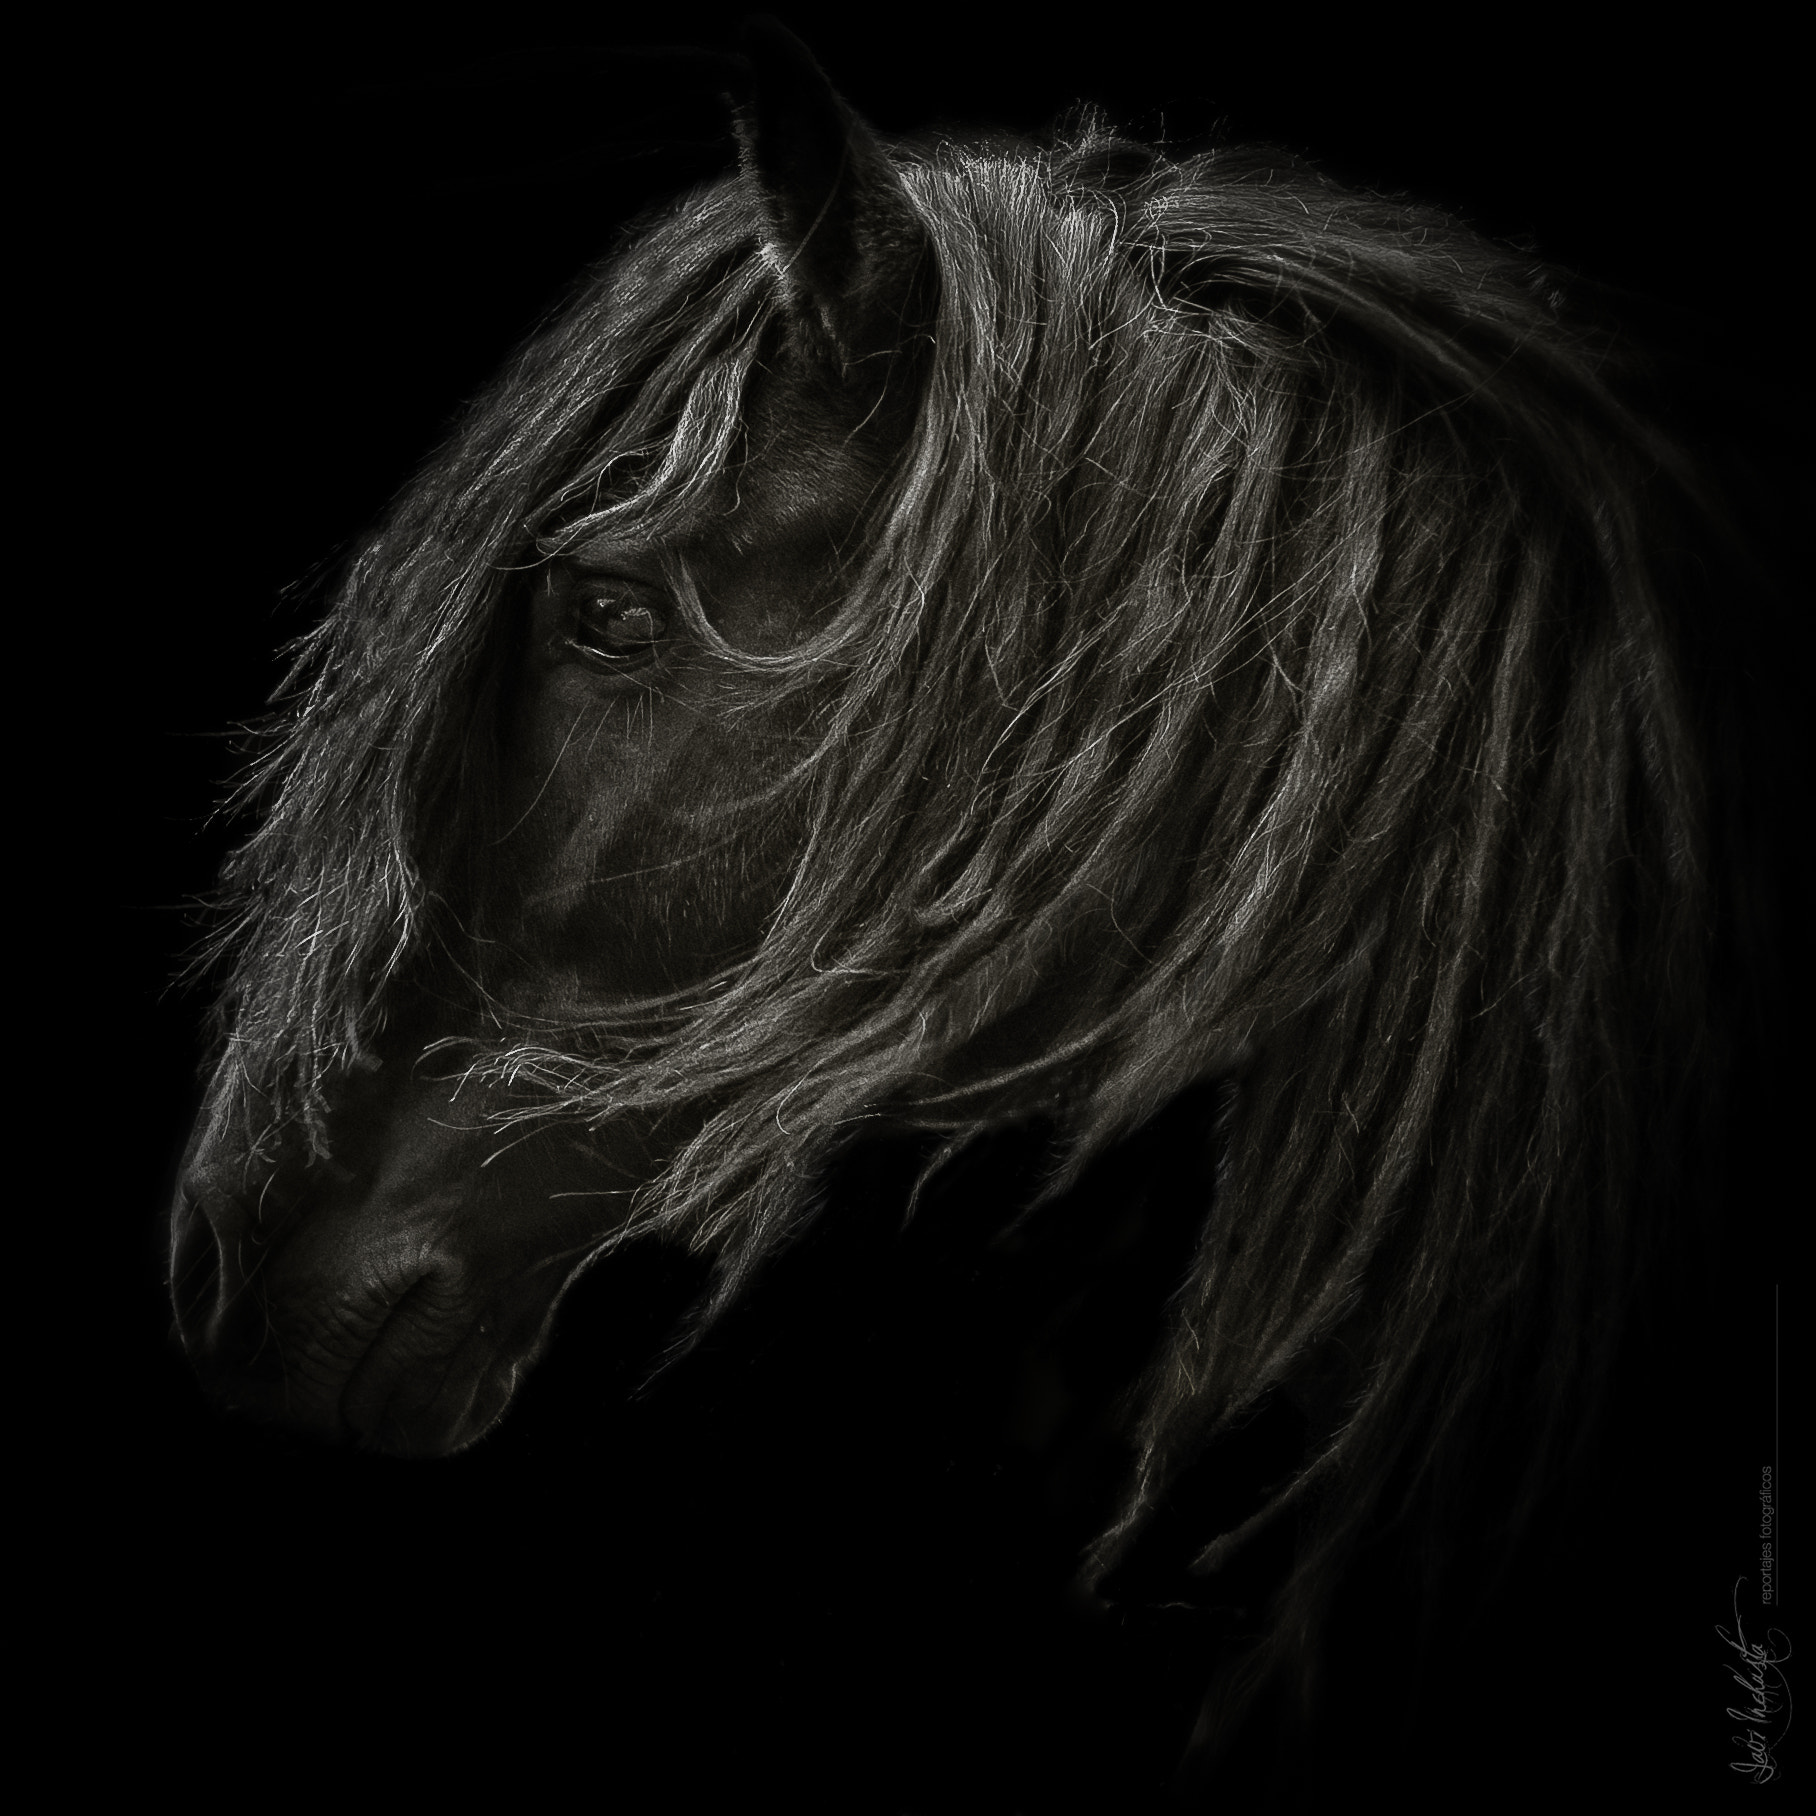 Photograph Horse by Javi Inchusta on 500px